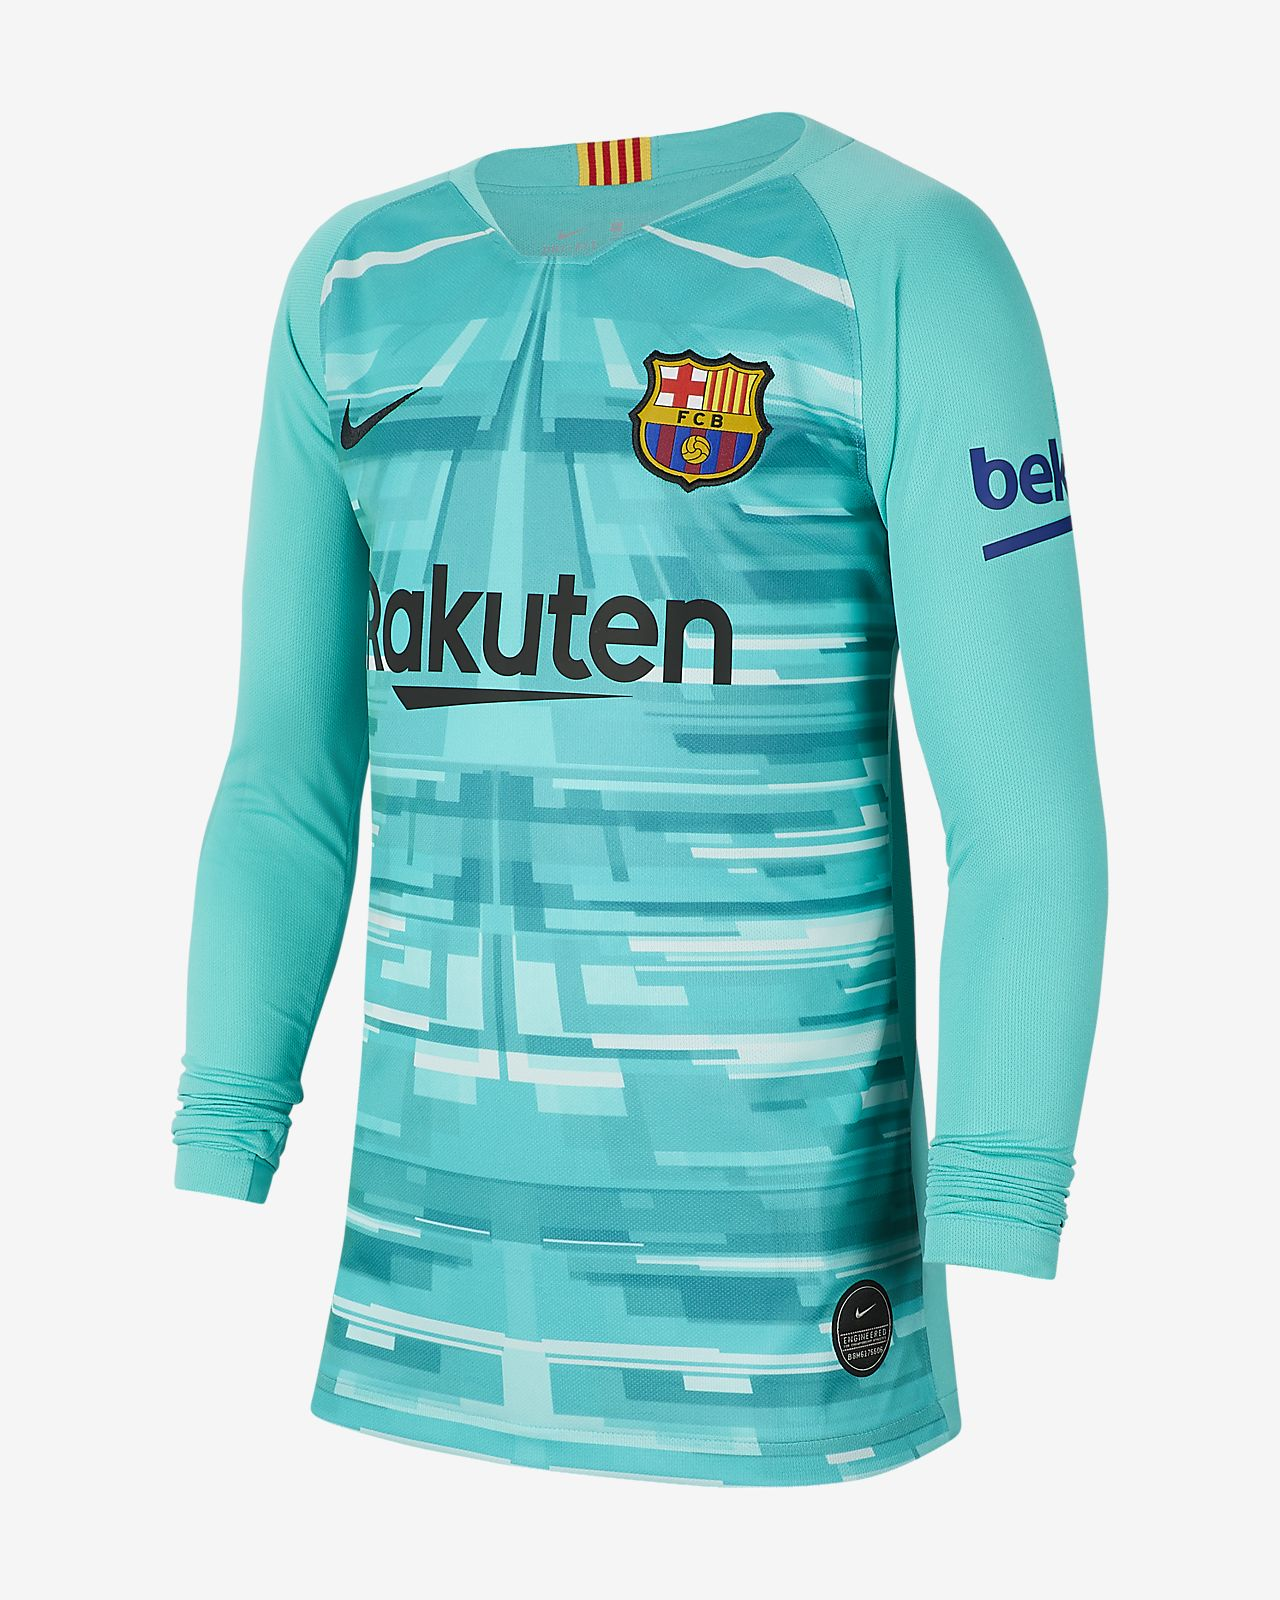 Camisola de futebol FC Barcelona 2019/20 Stadium Goalkeeper Júnior